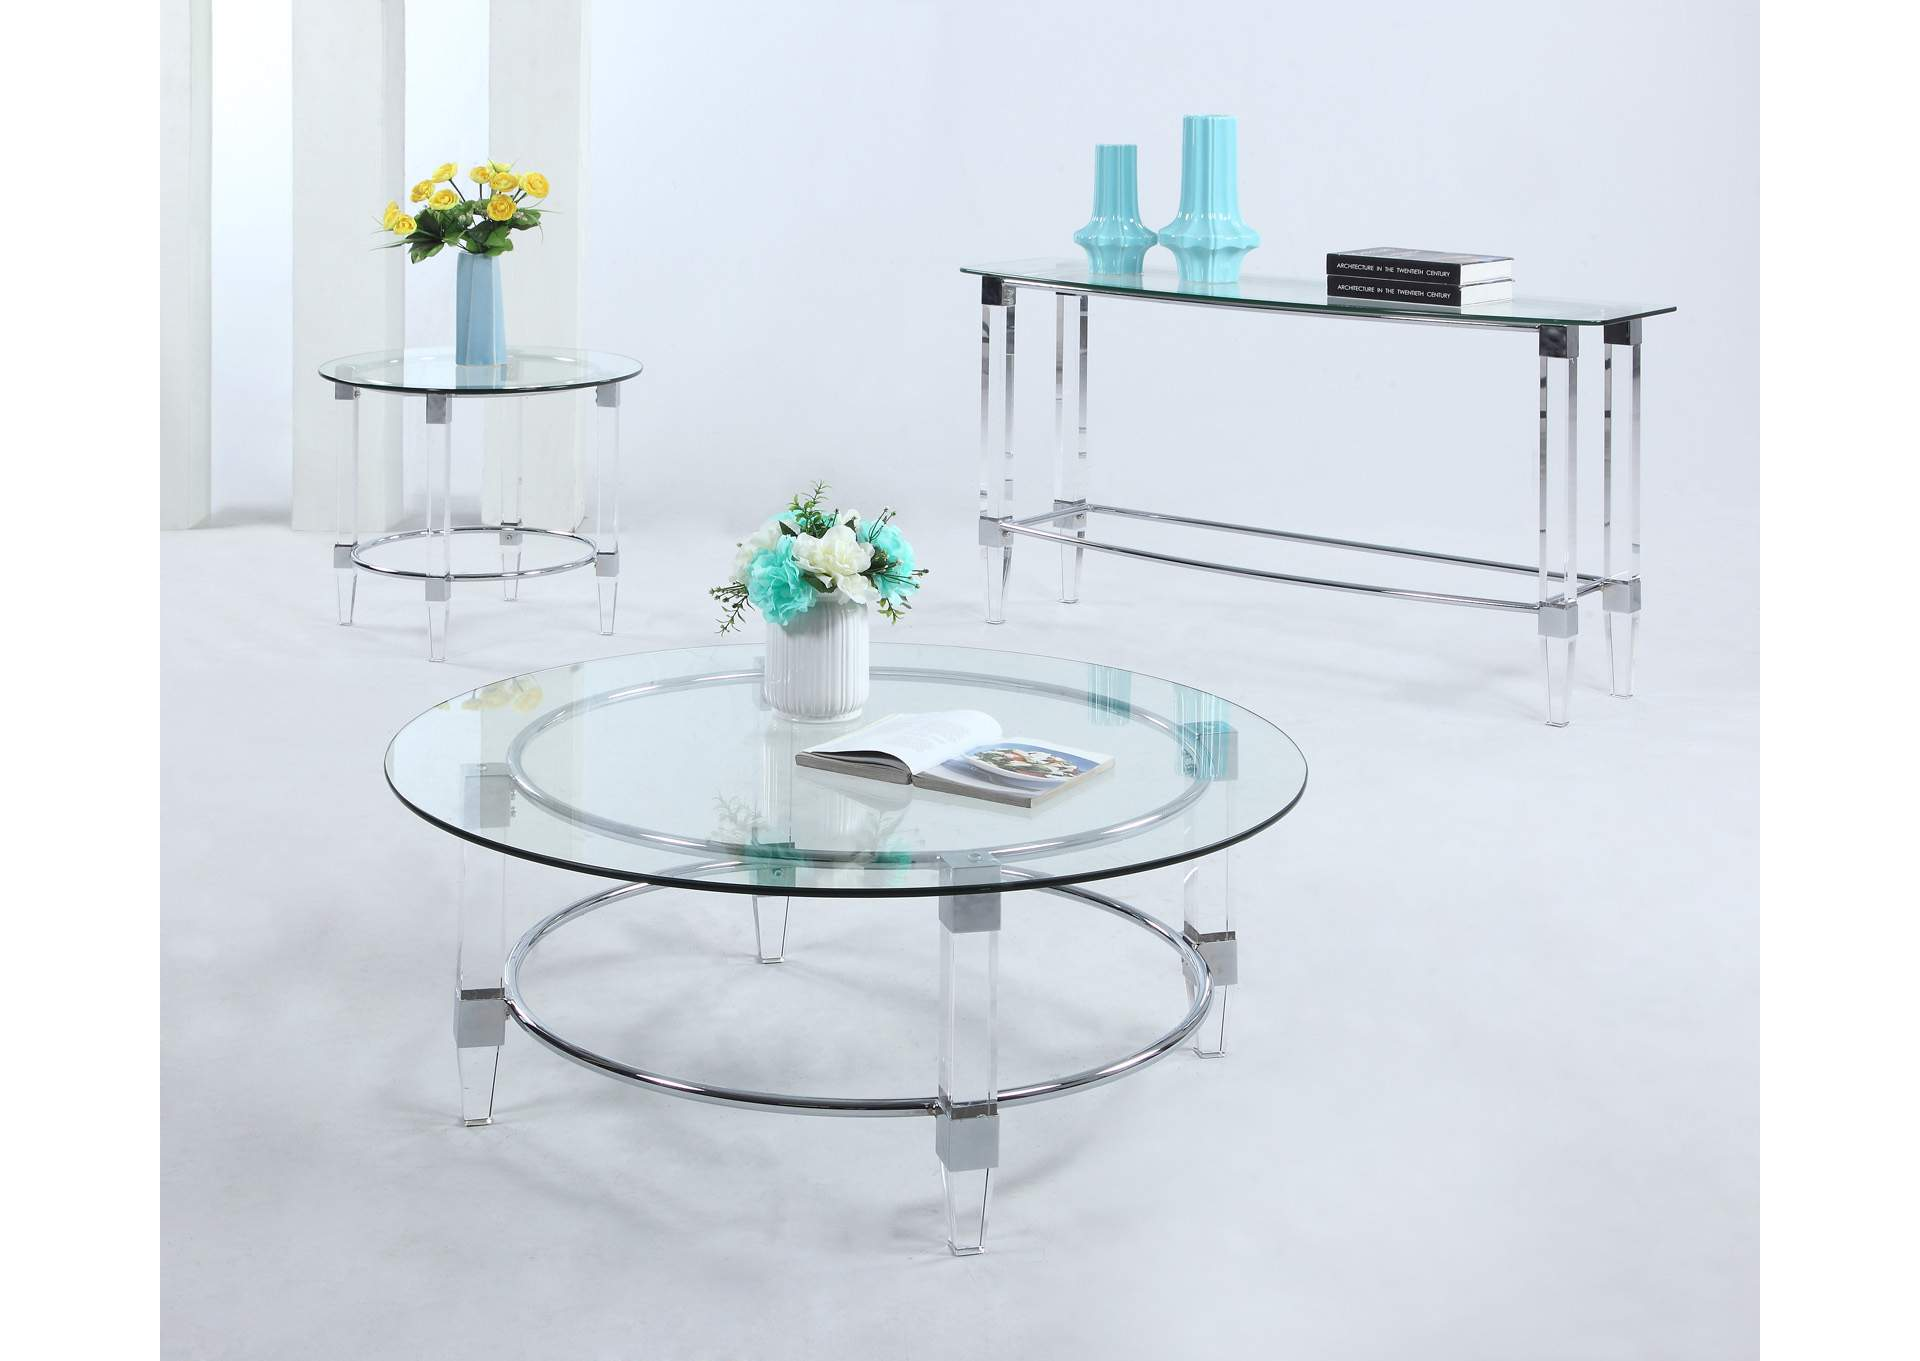 Contemporary Round Glass Top Lamp Table,Chintaly Imports